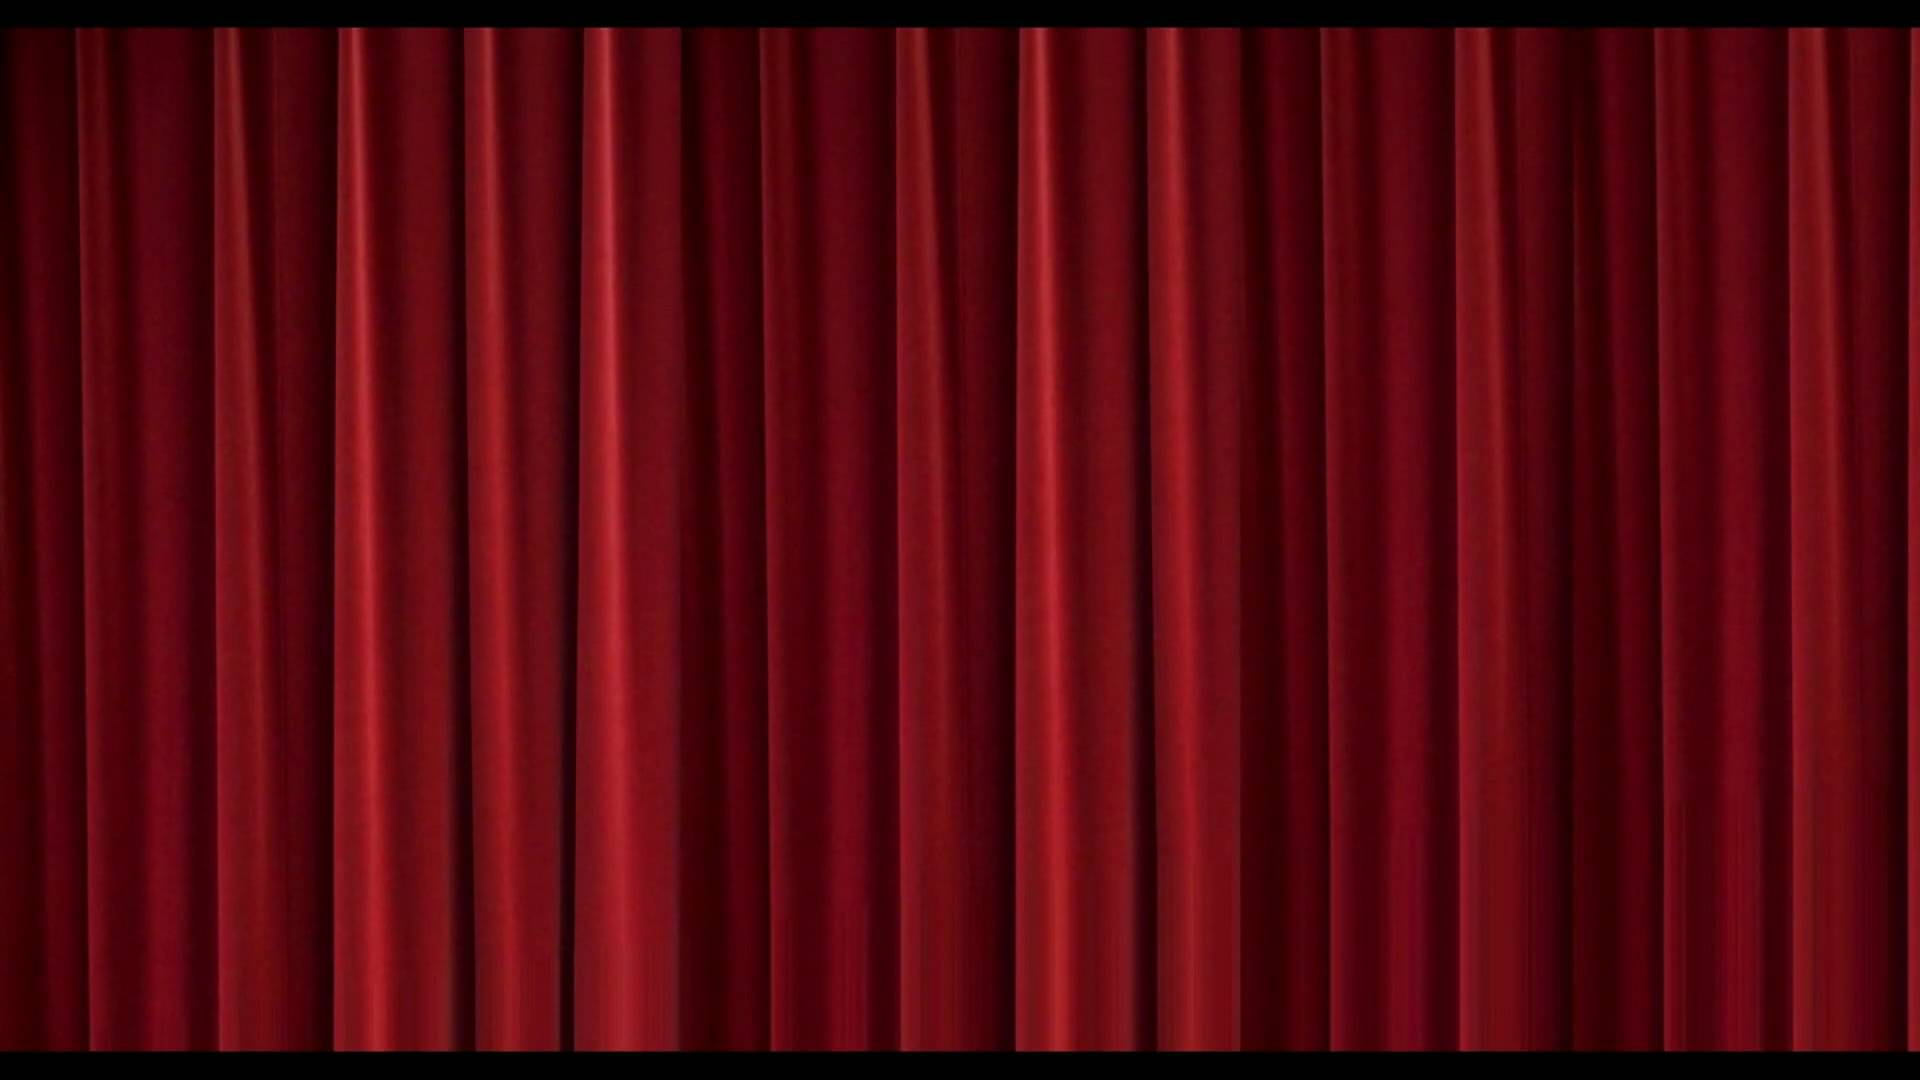 Home Theater Movie Curtains Animated   1080p High Def 1920x1080